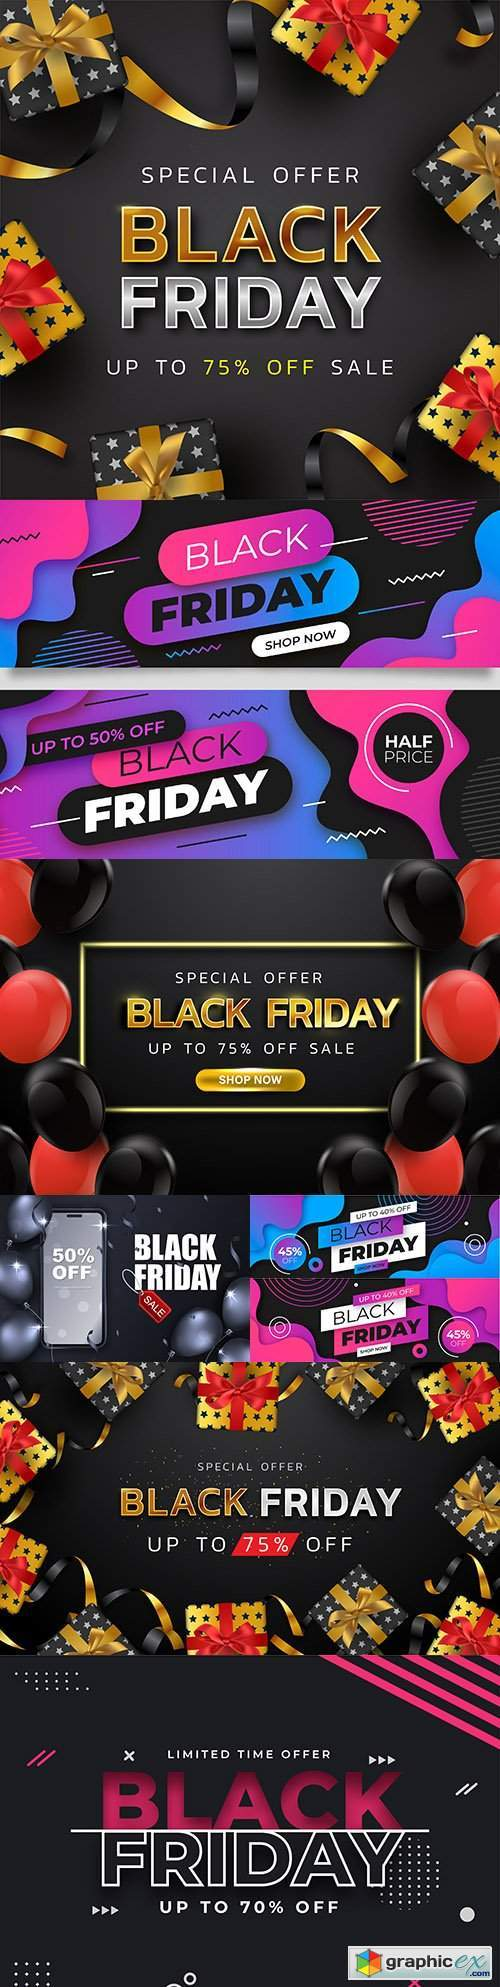 Black Friday and sale special design illustration 37